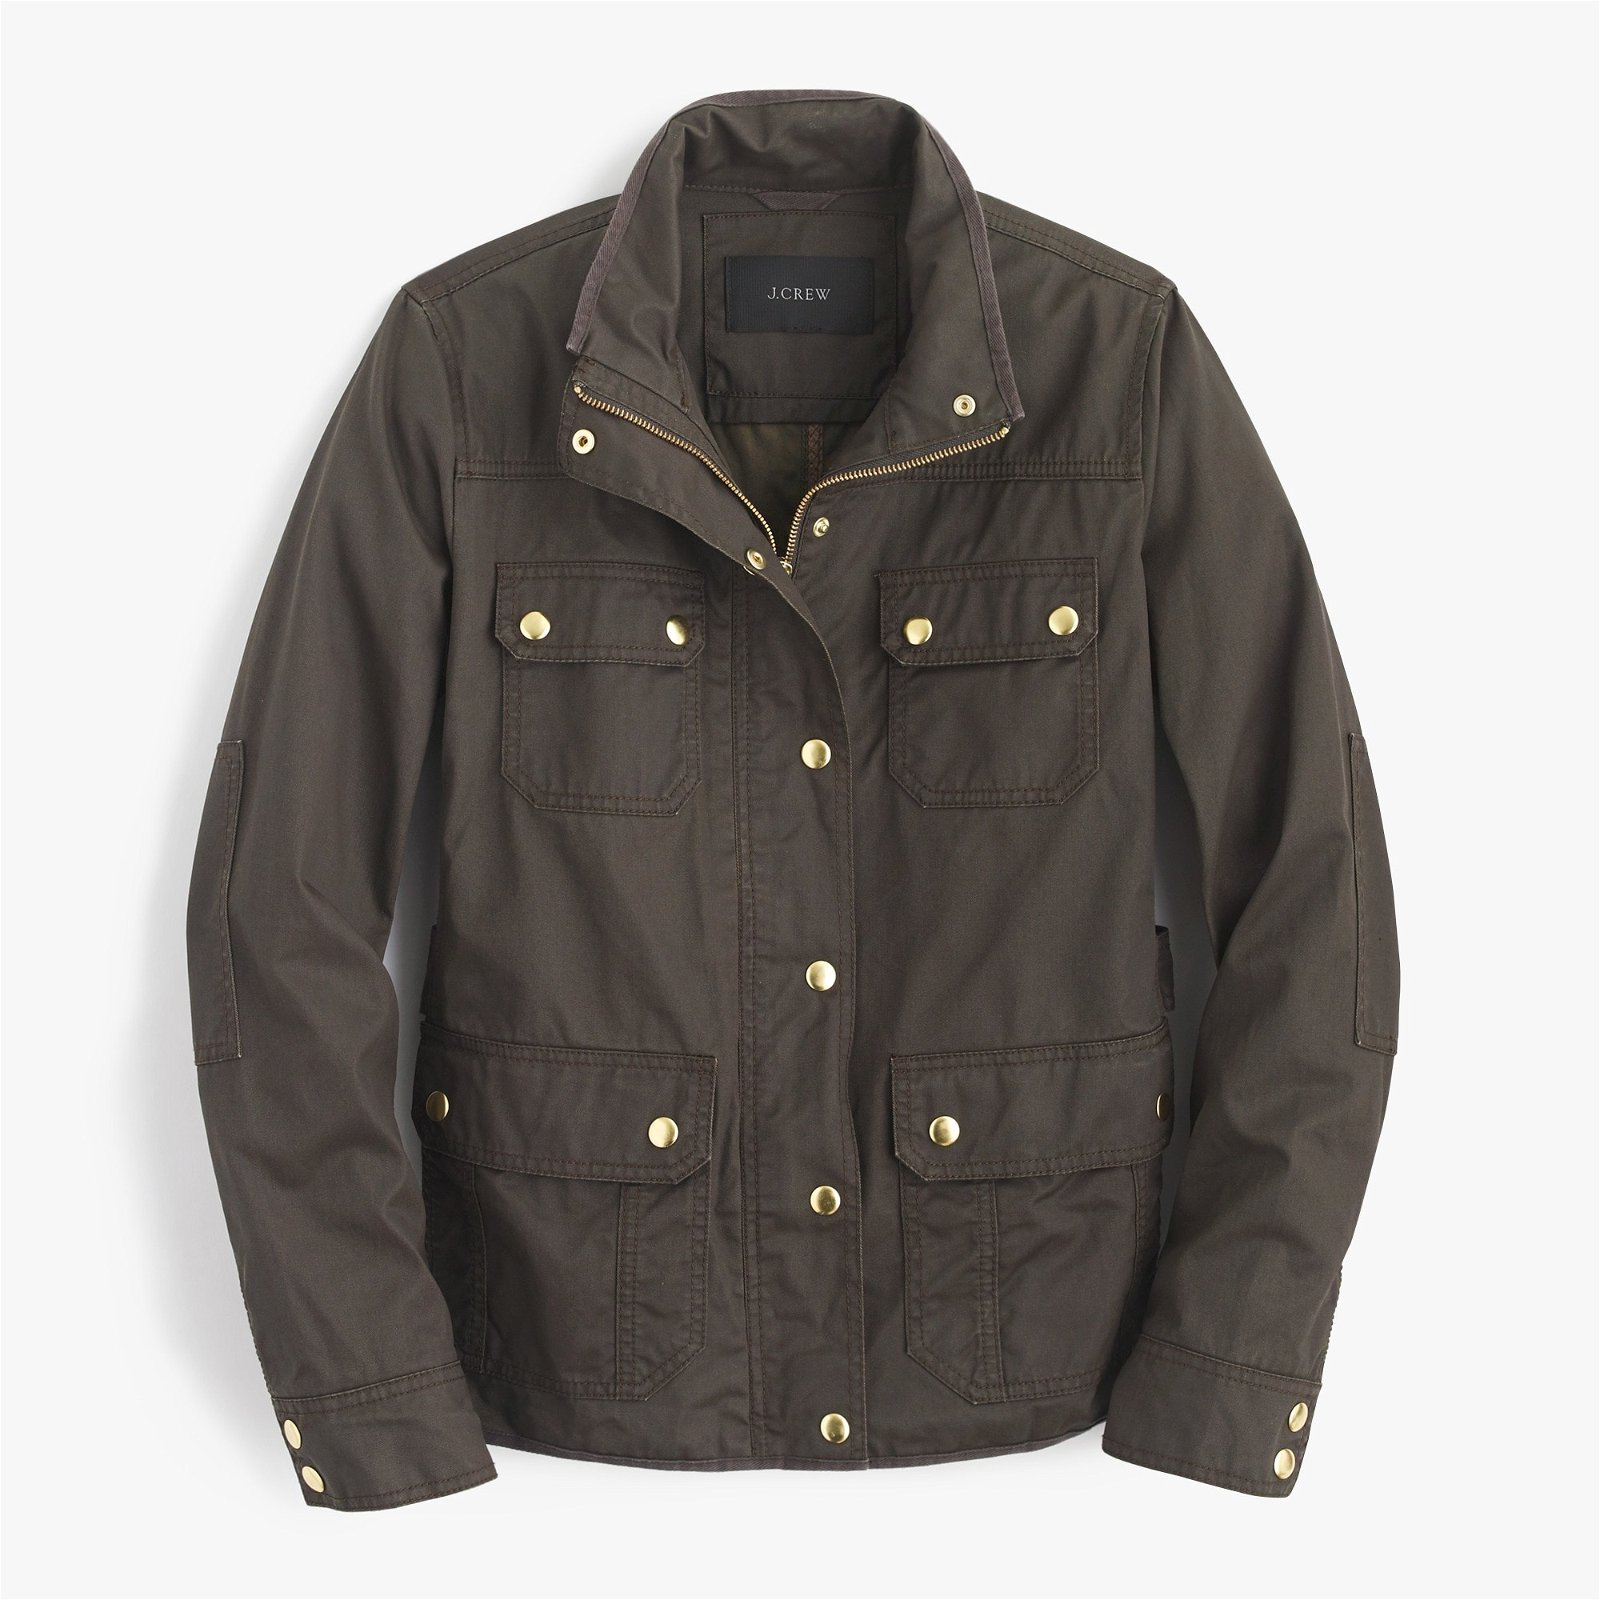 Classic The downtown field jacket